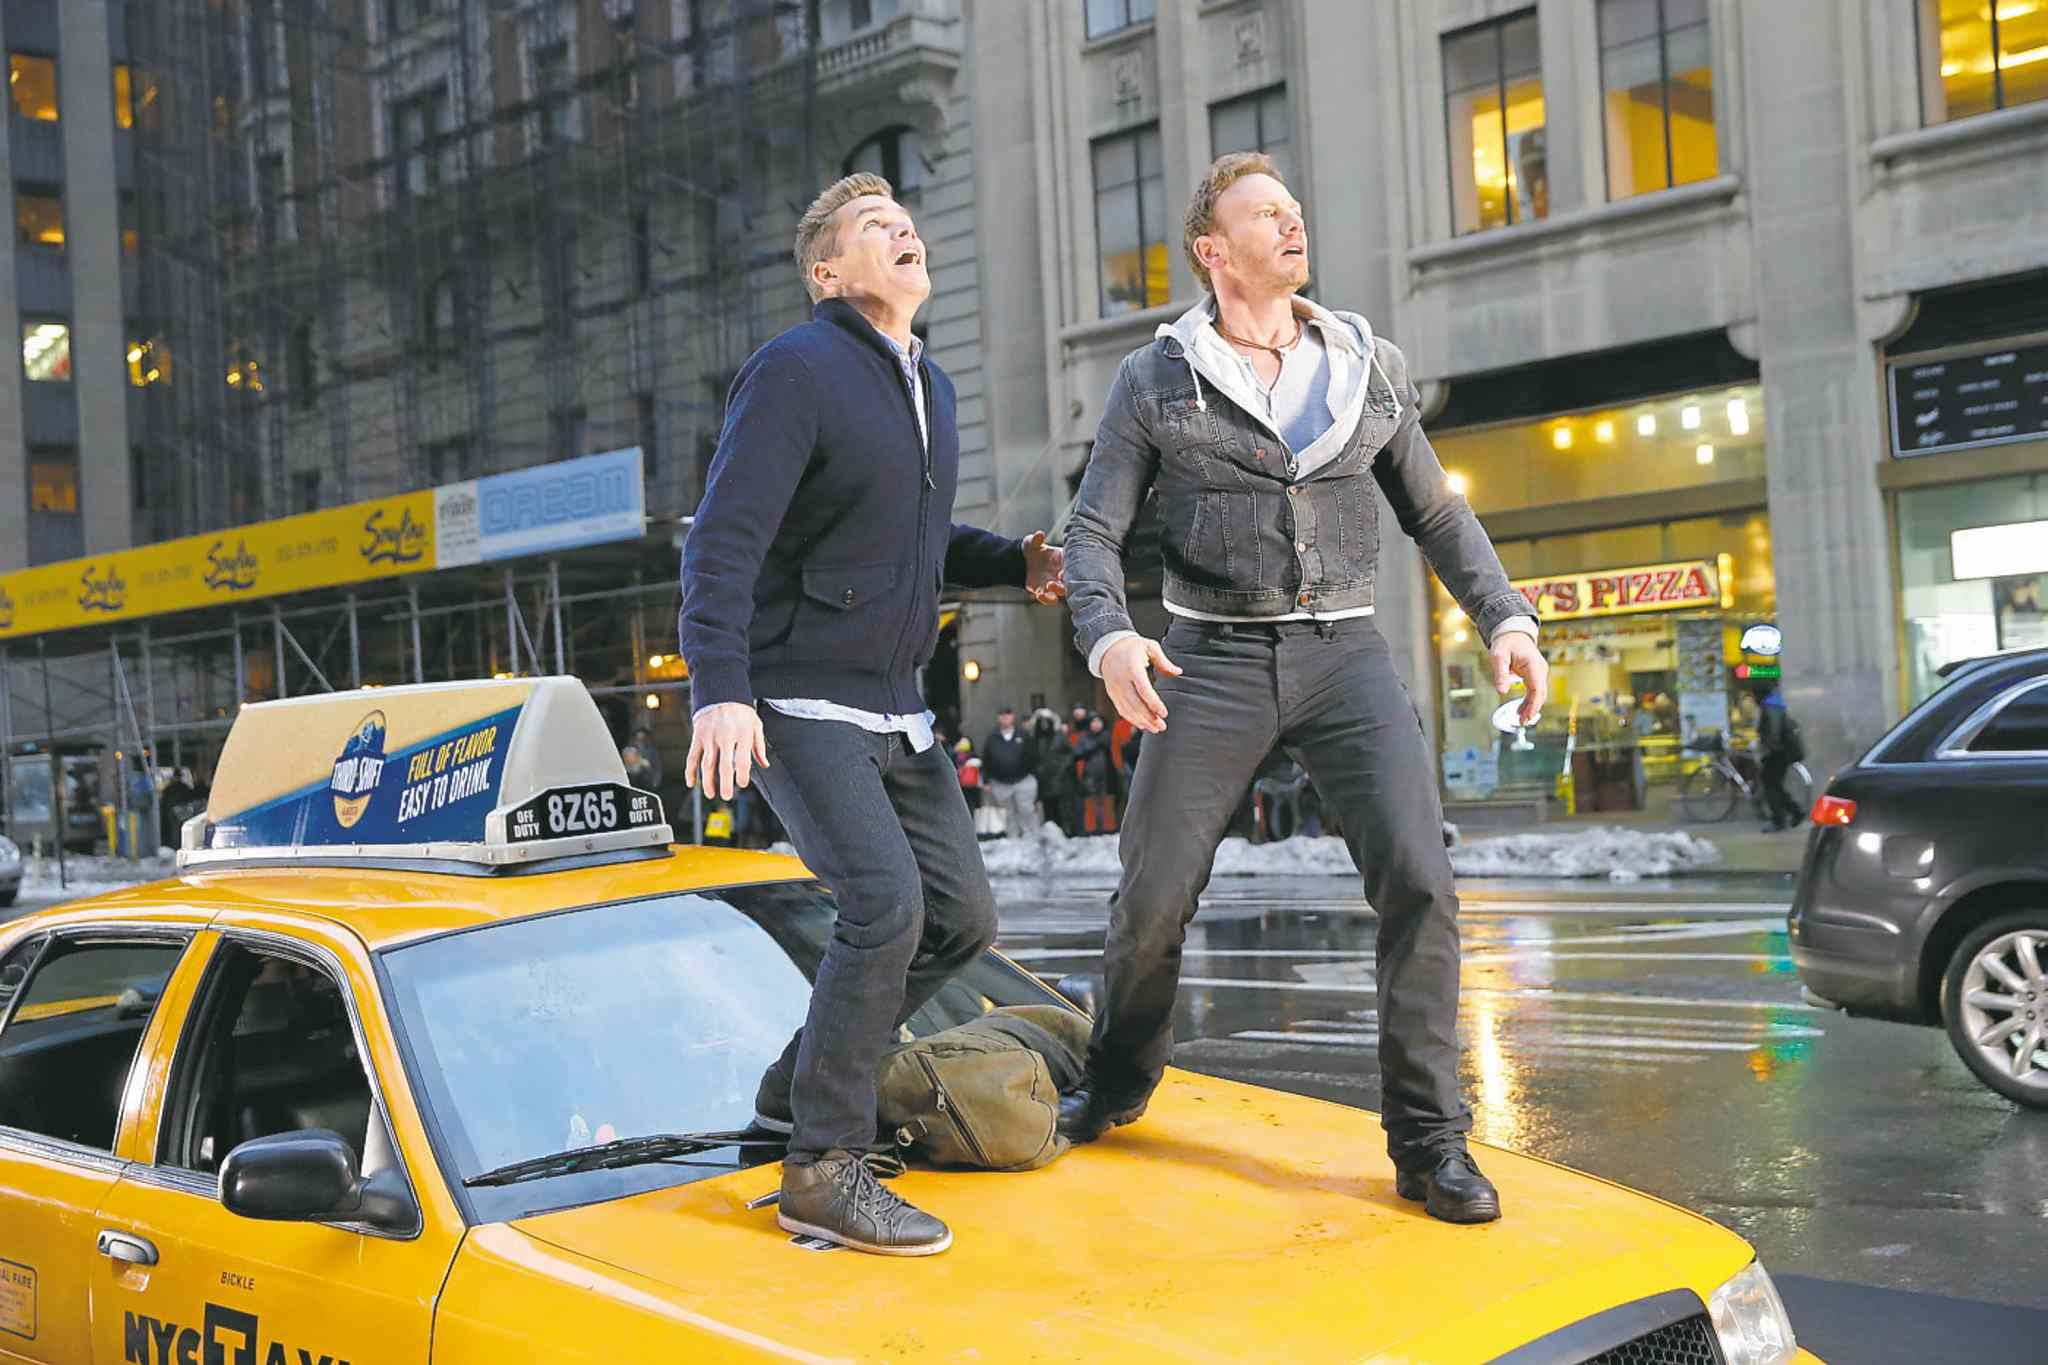 Mark McGrath (left) as Martin Brody, Ian Ziering as Fin Shepard.